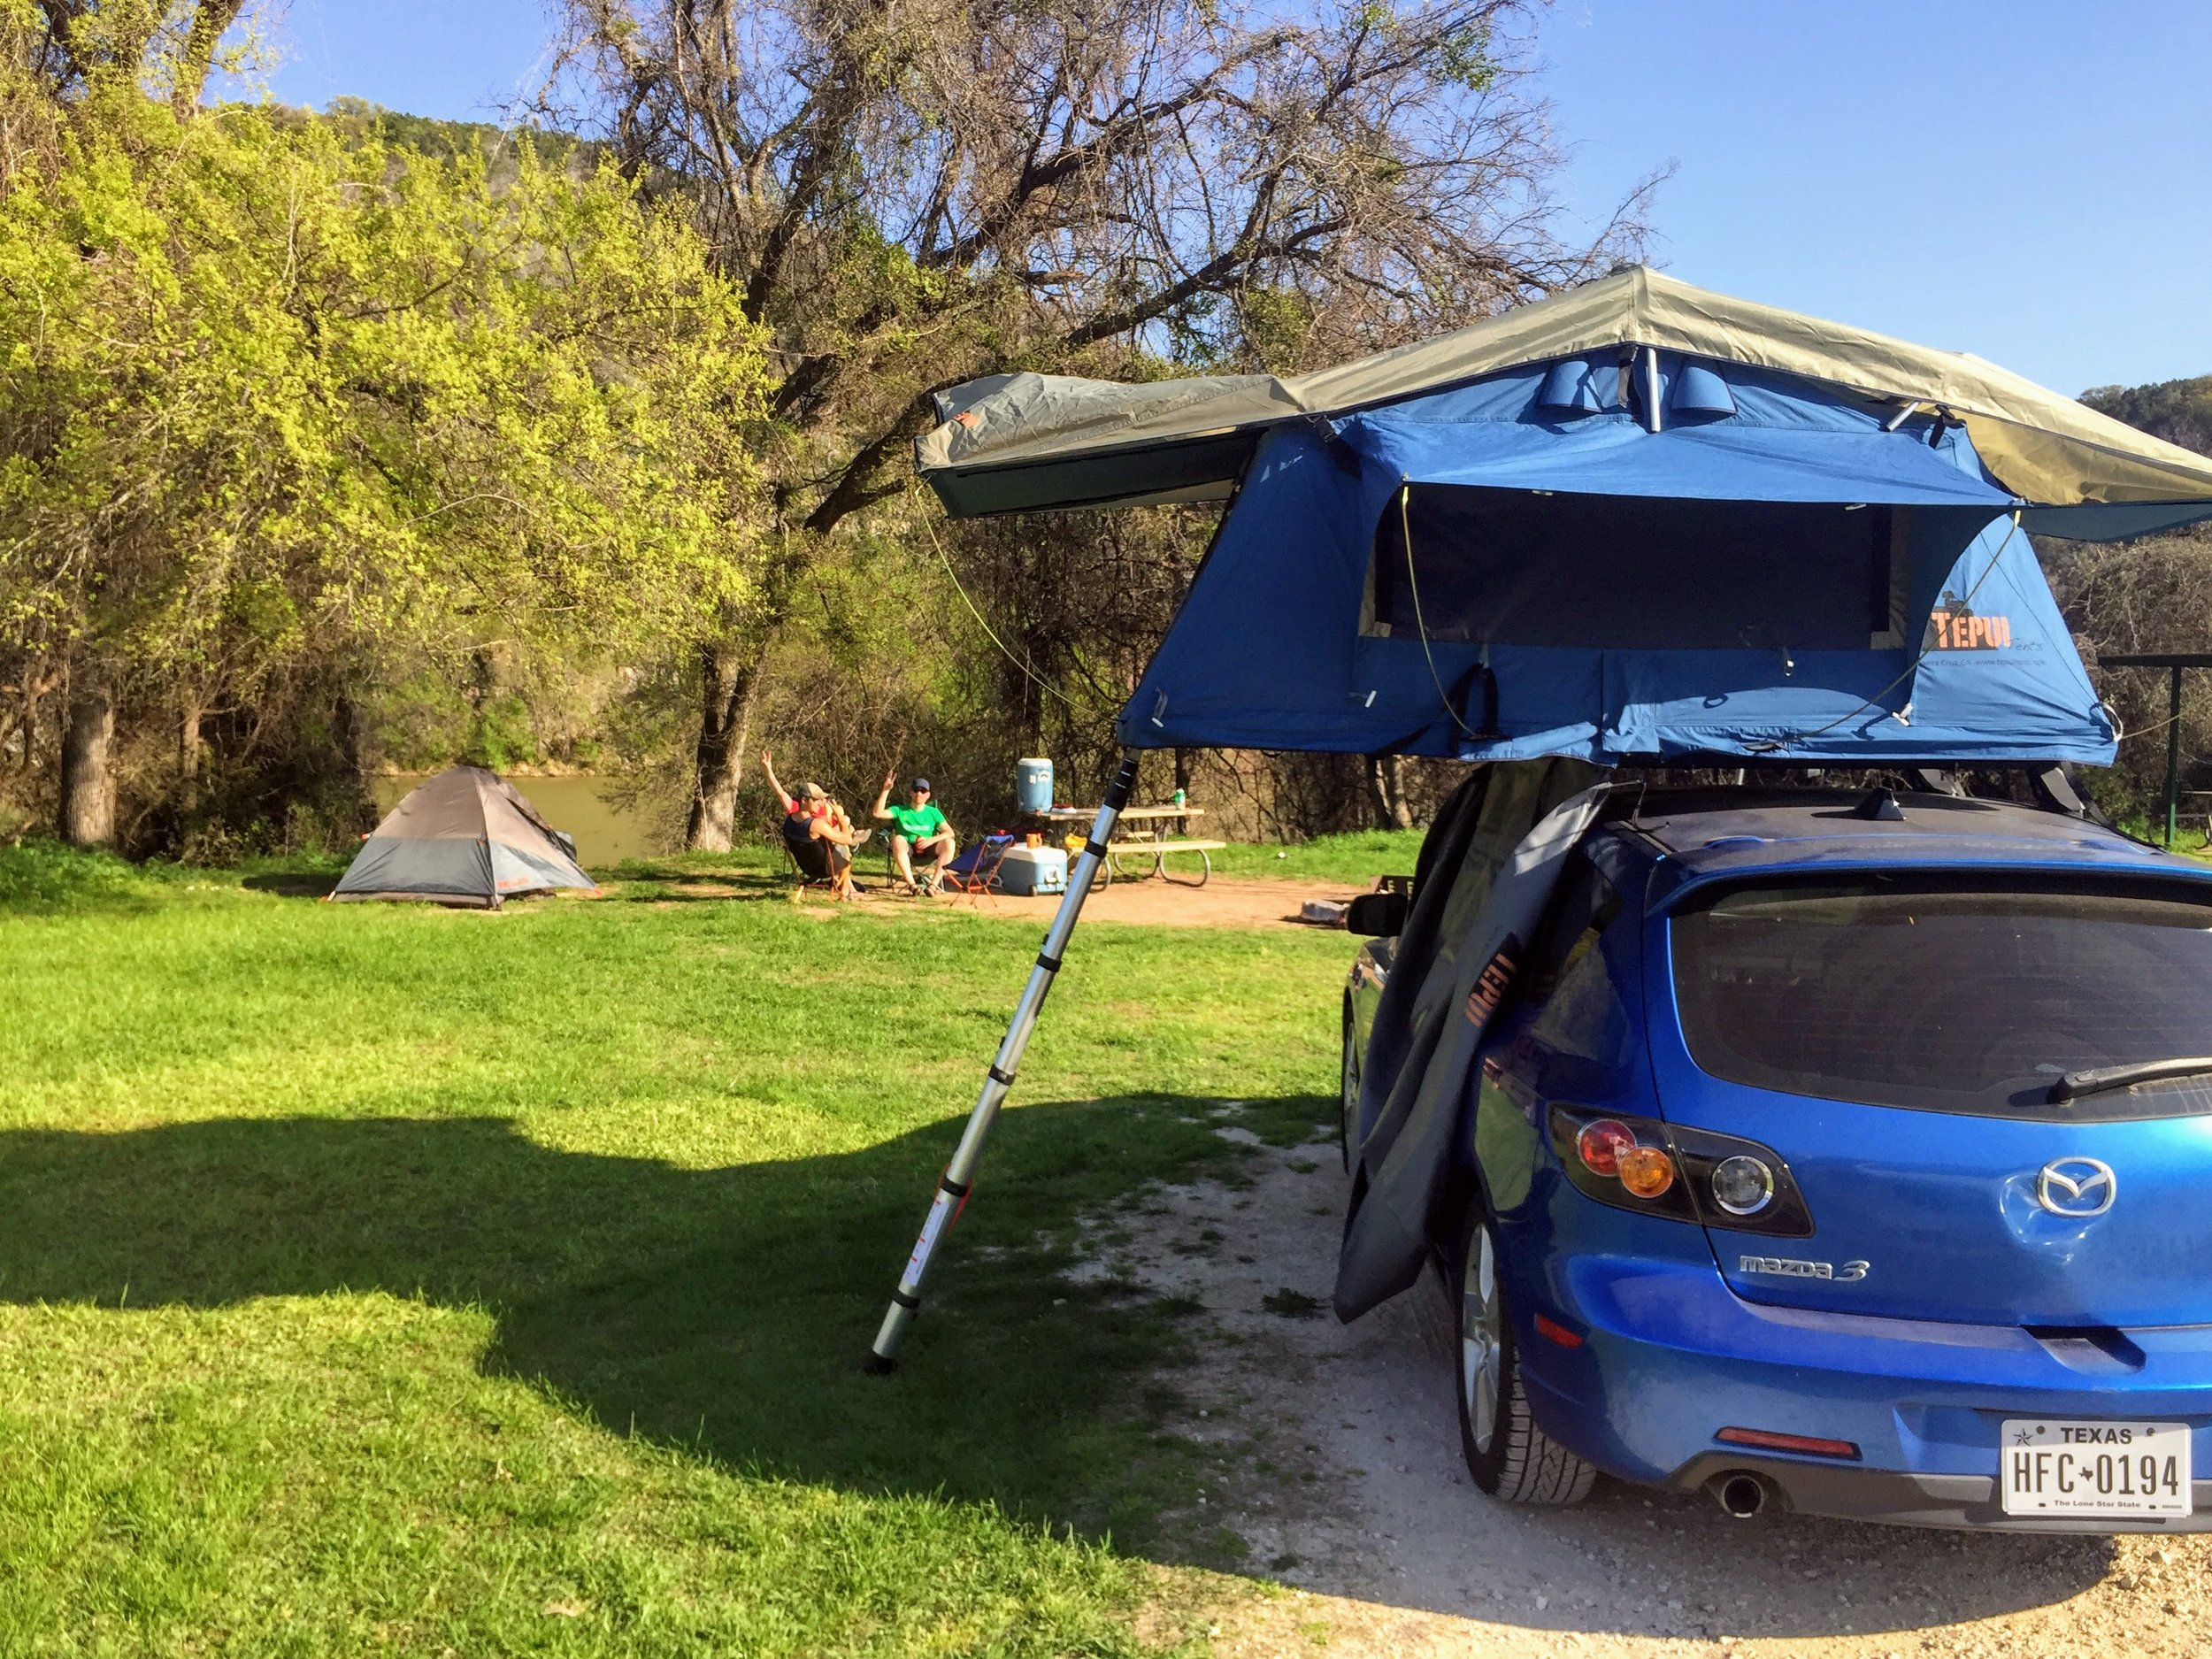 Glamping at it's finest with our Tepui Rooftop Tent. It's amazing y'all. #teamtepui